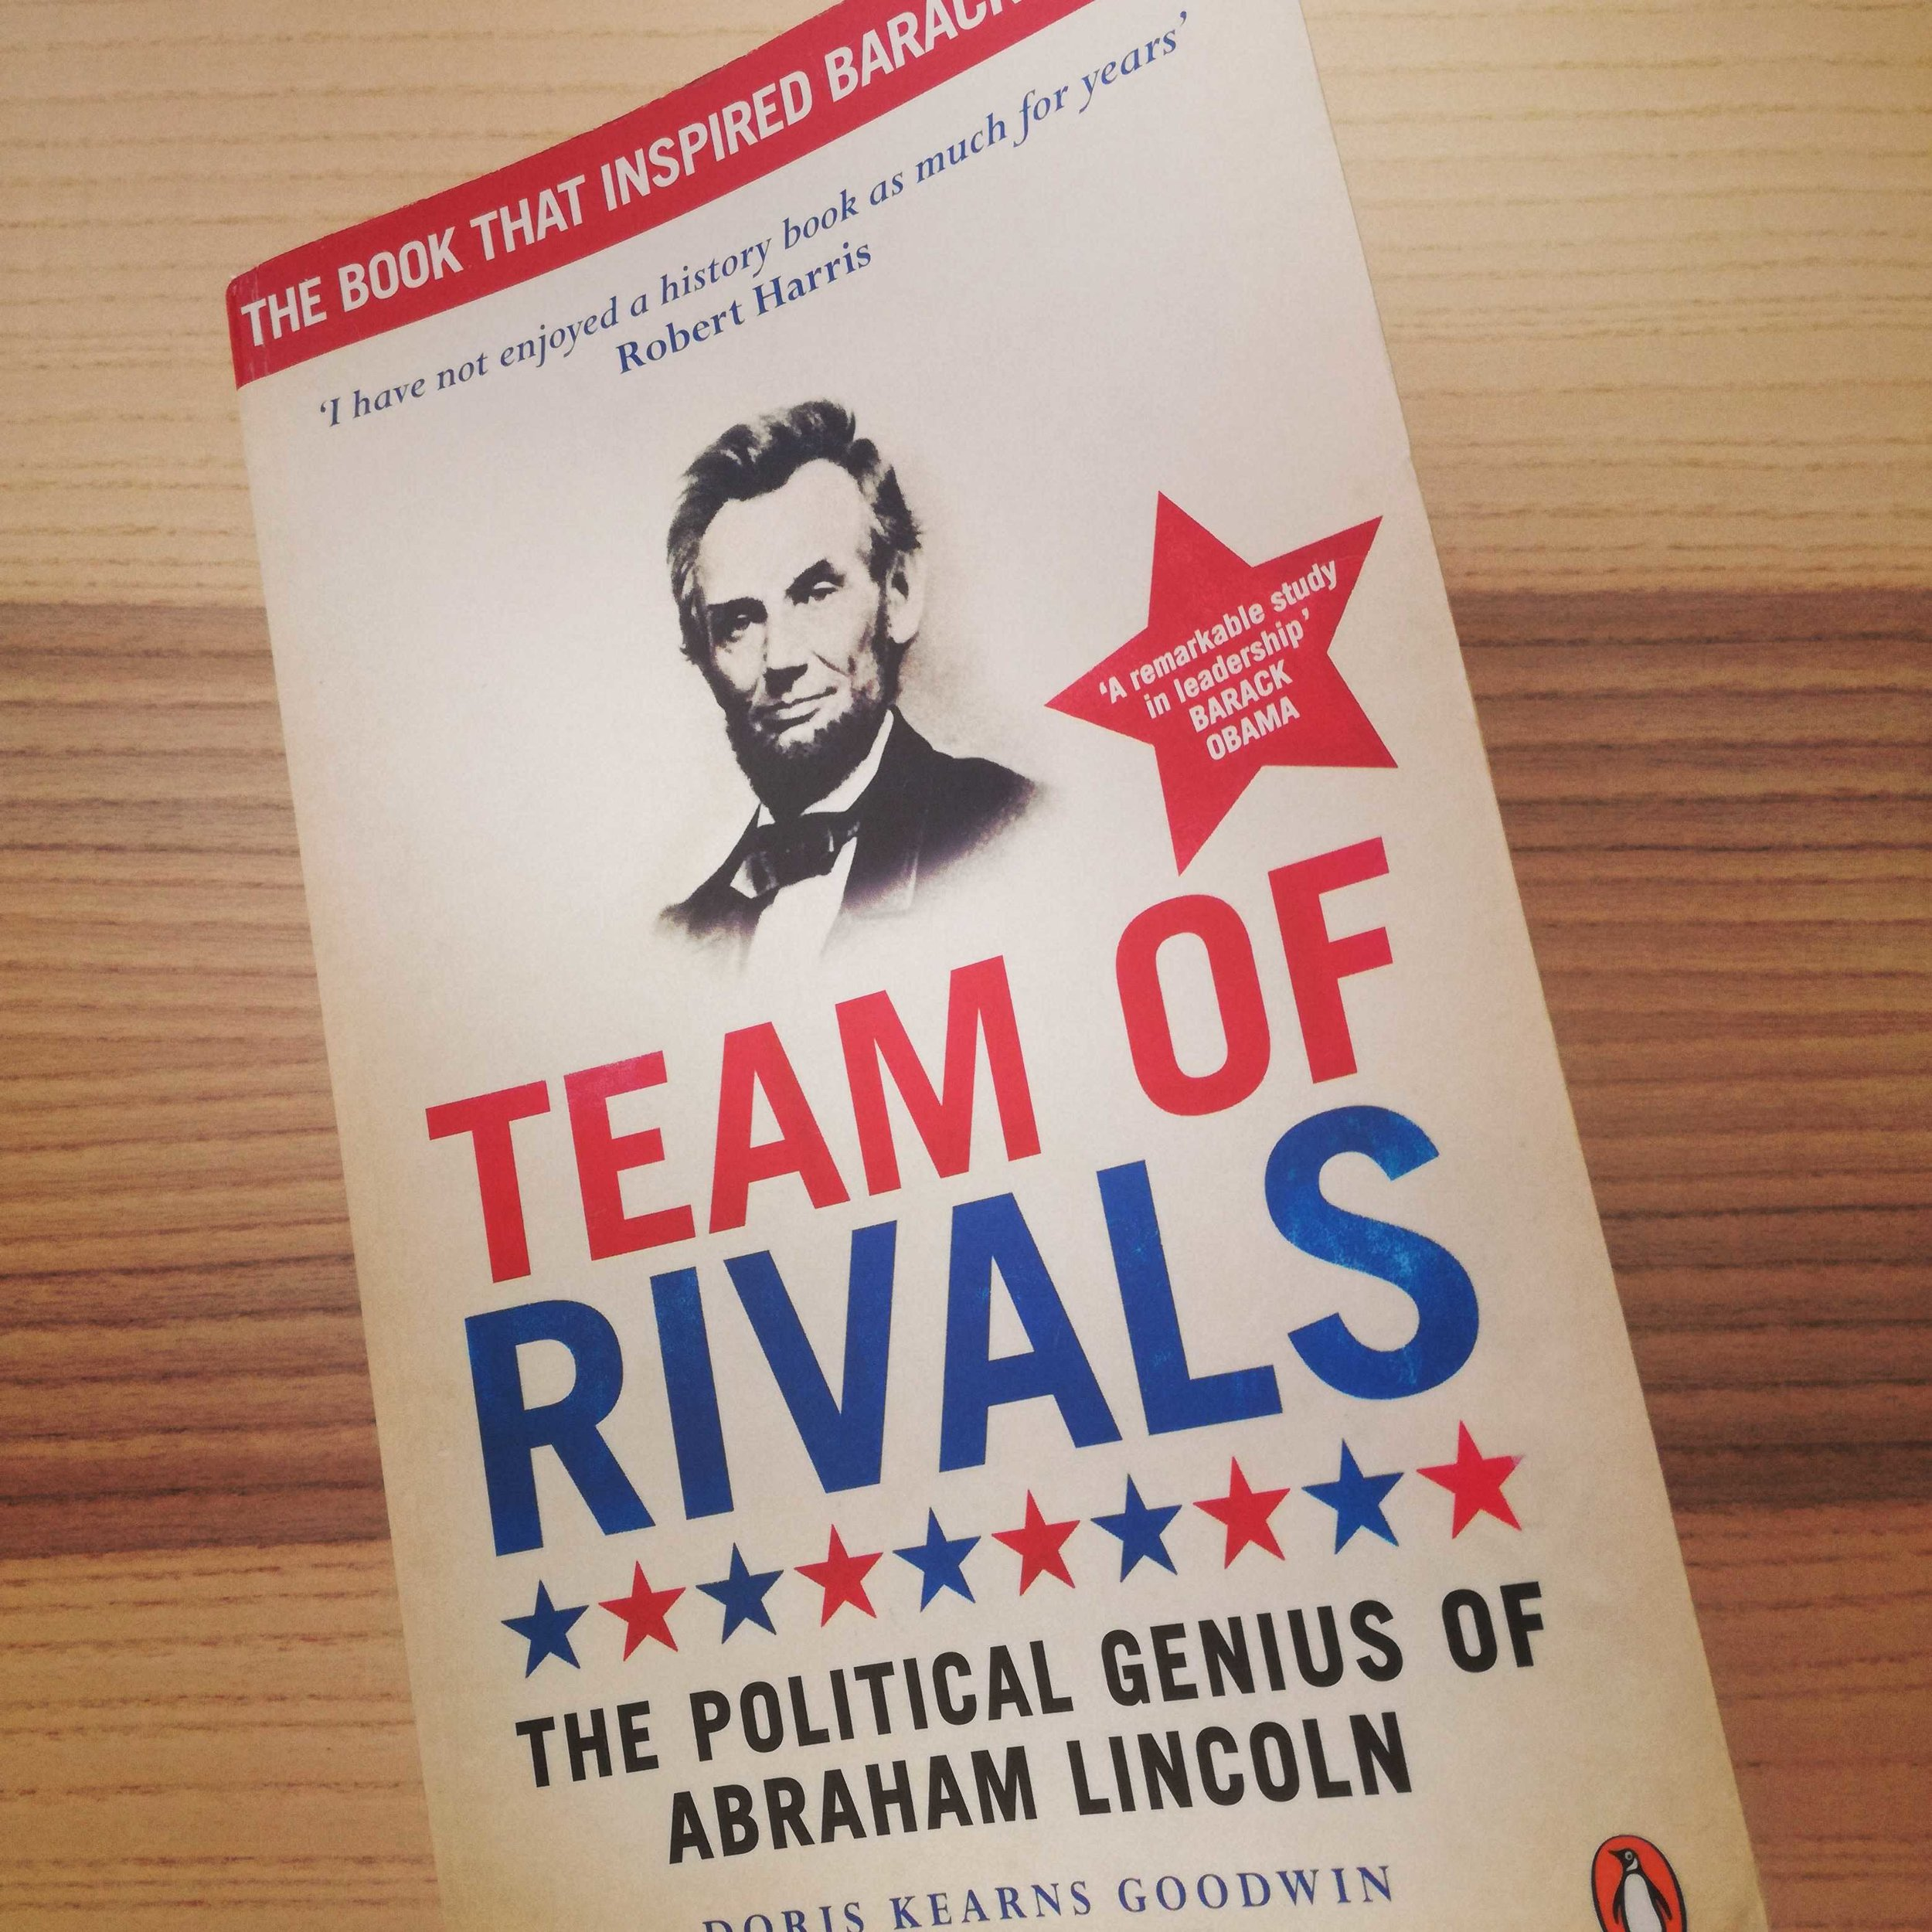 My first copy of Doris Kearns Goodwin's Team of Rivals, bought at Skoob Books in London